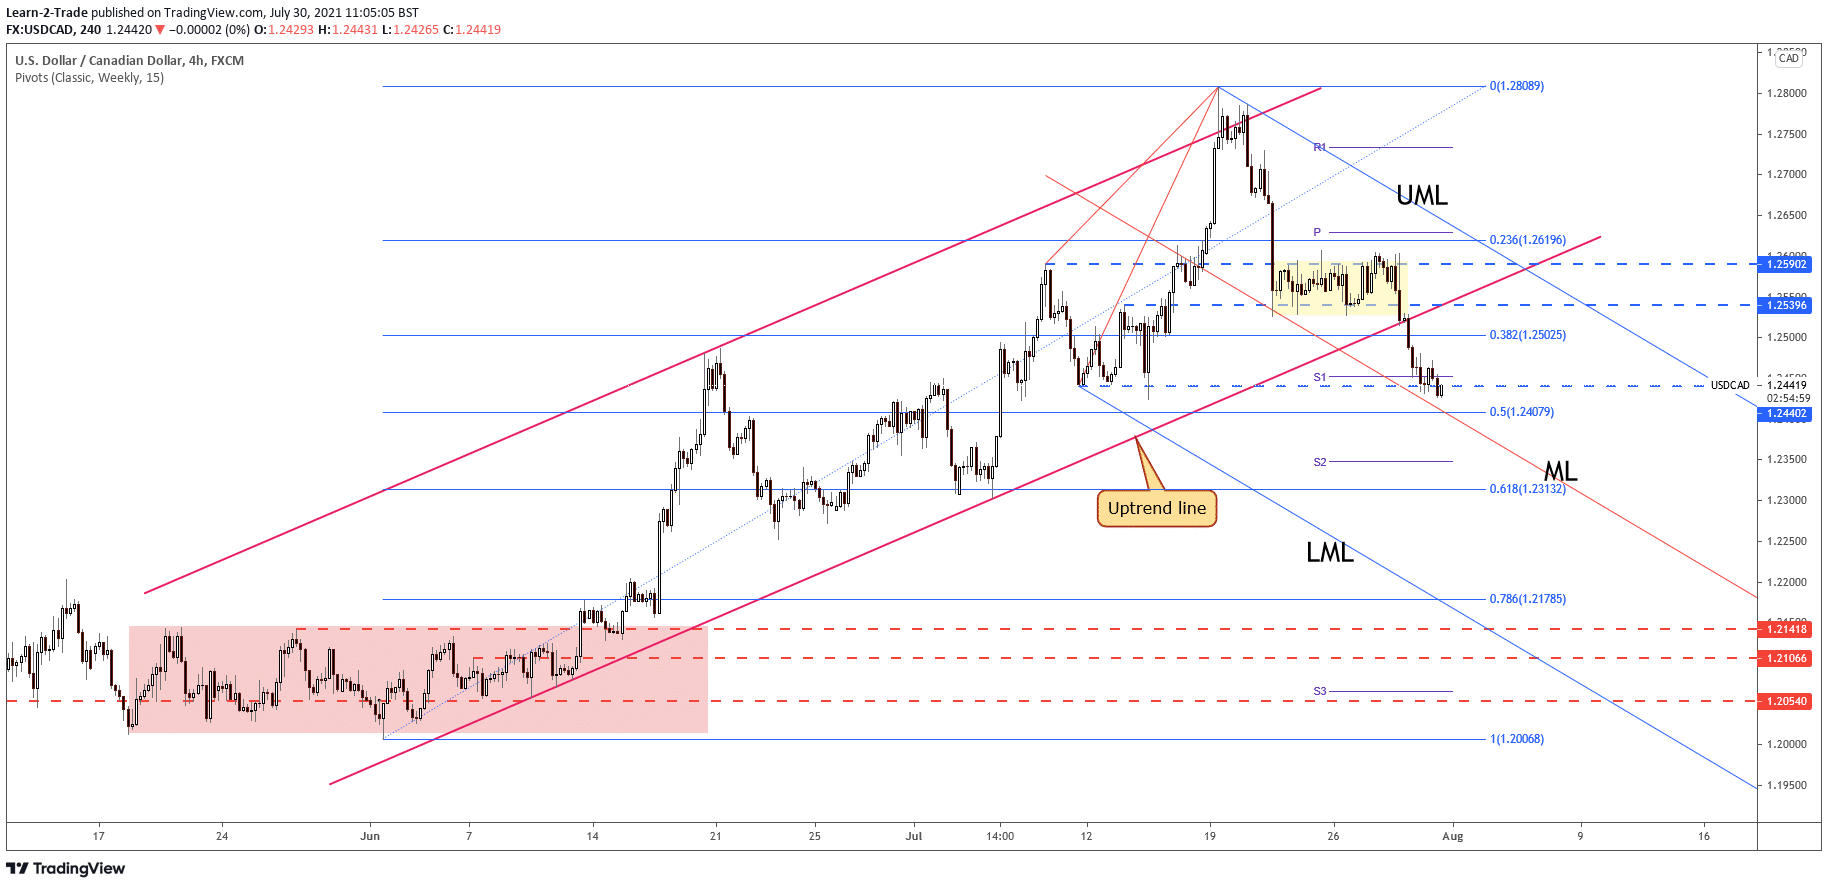 USD/CAD 4-hour price chart